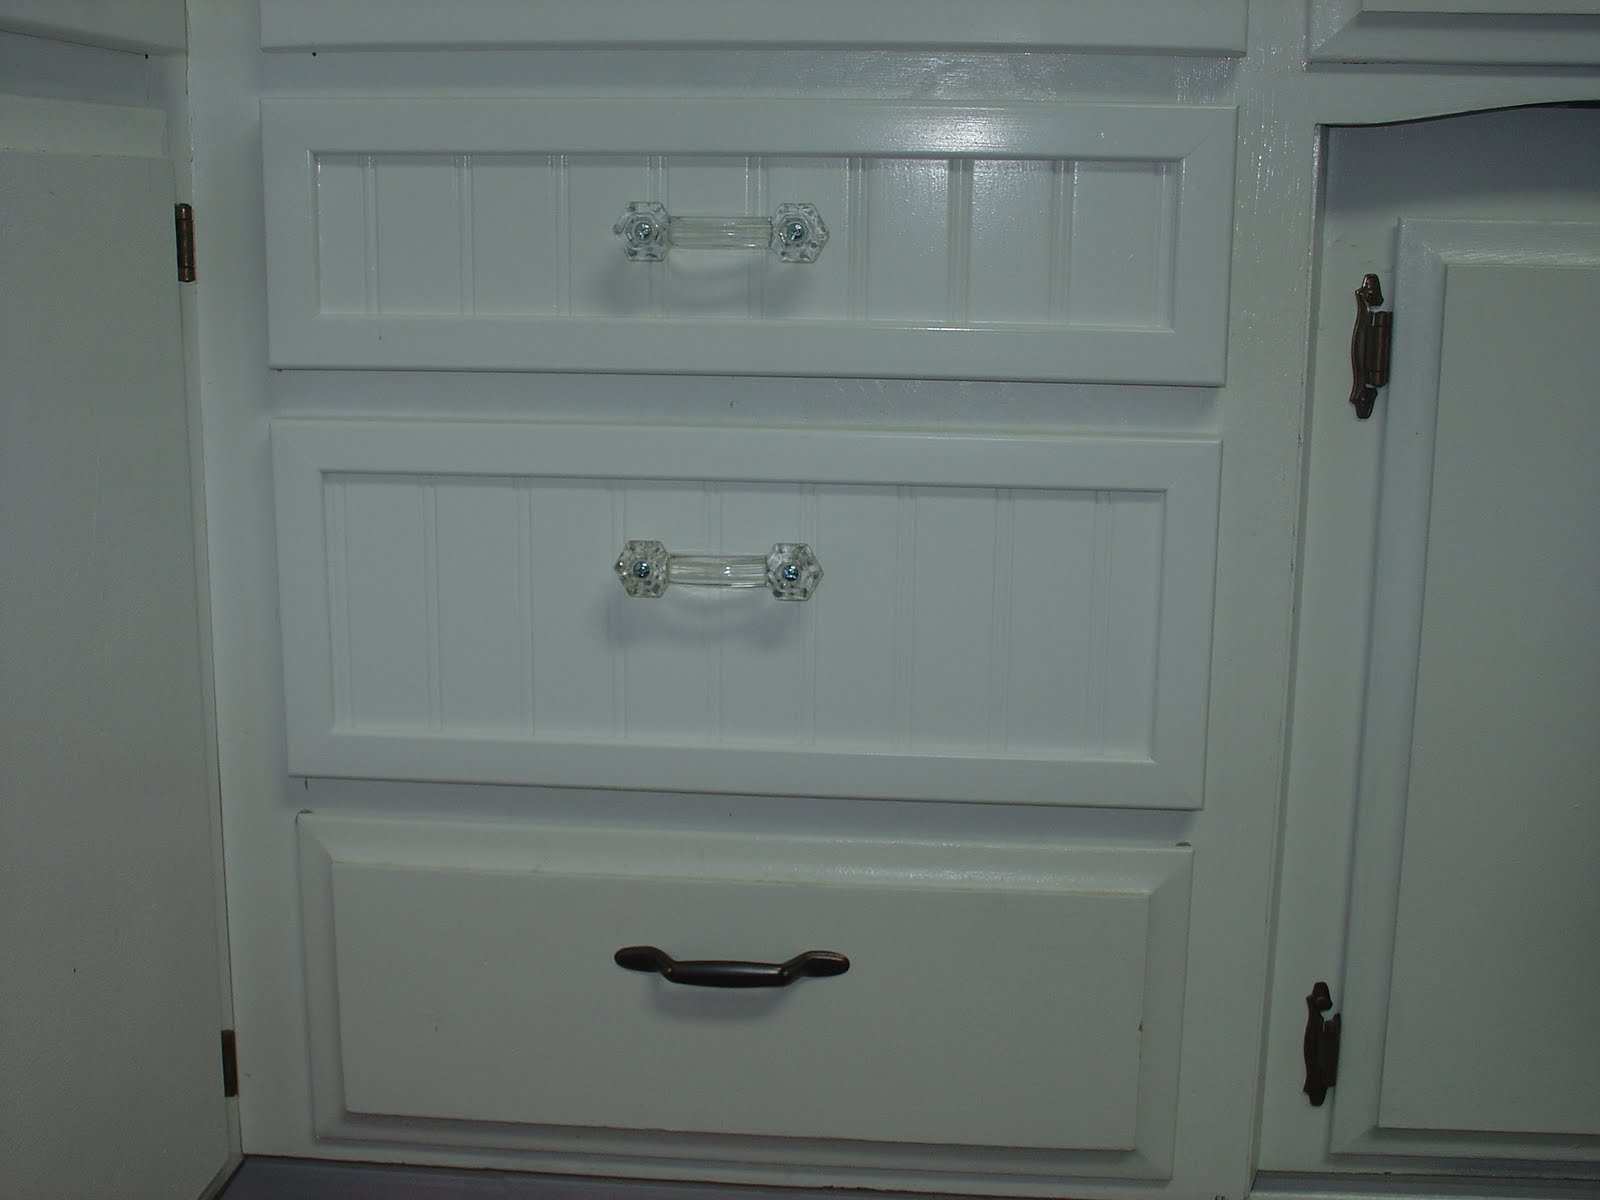 The Isaac Family My new kitchen cabinet doors